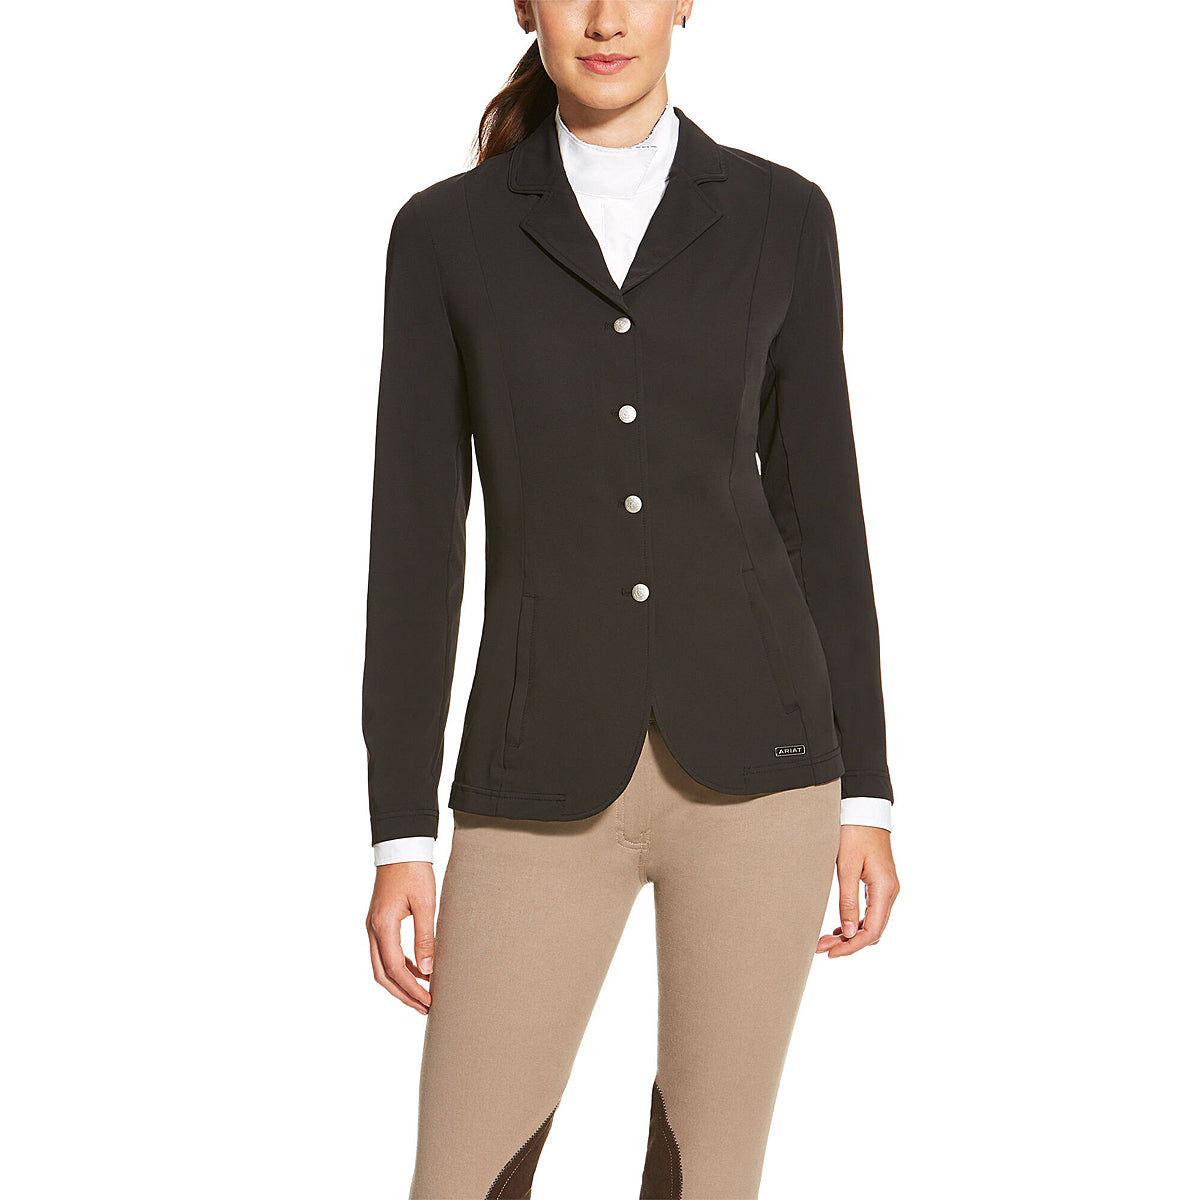 Ariat Women's Artico Light Weight Show Coat